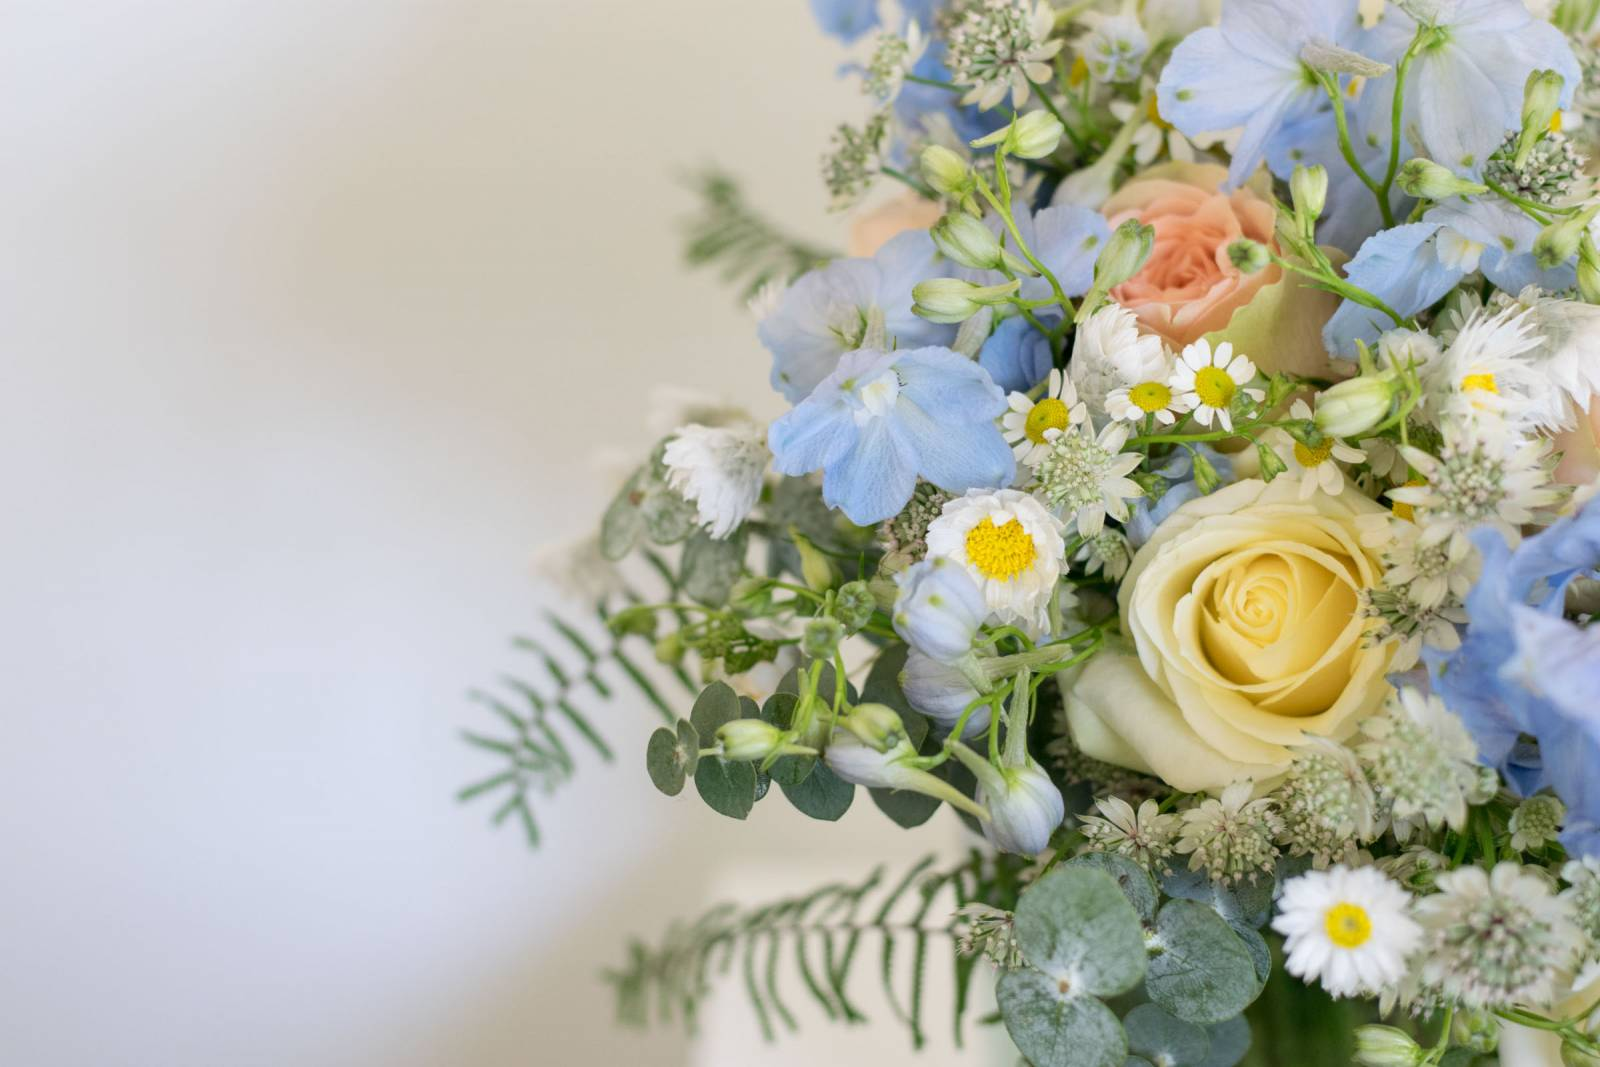 Degroote Bloemen - House of Weddings -15